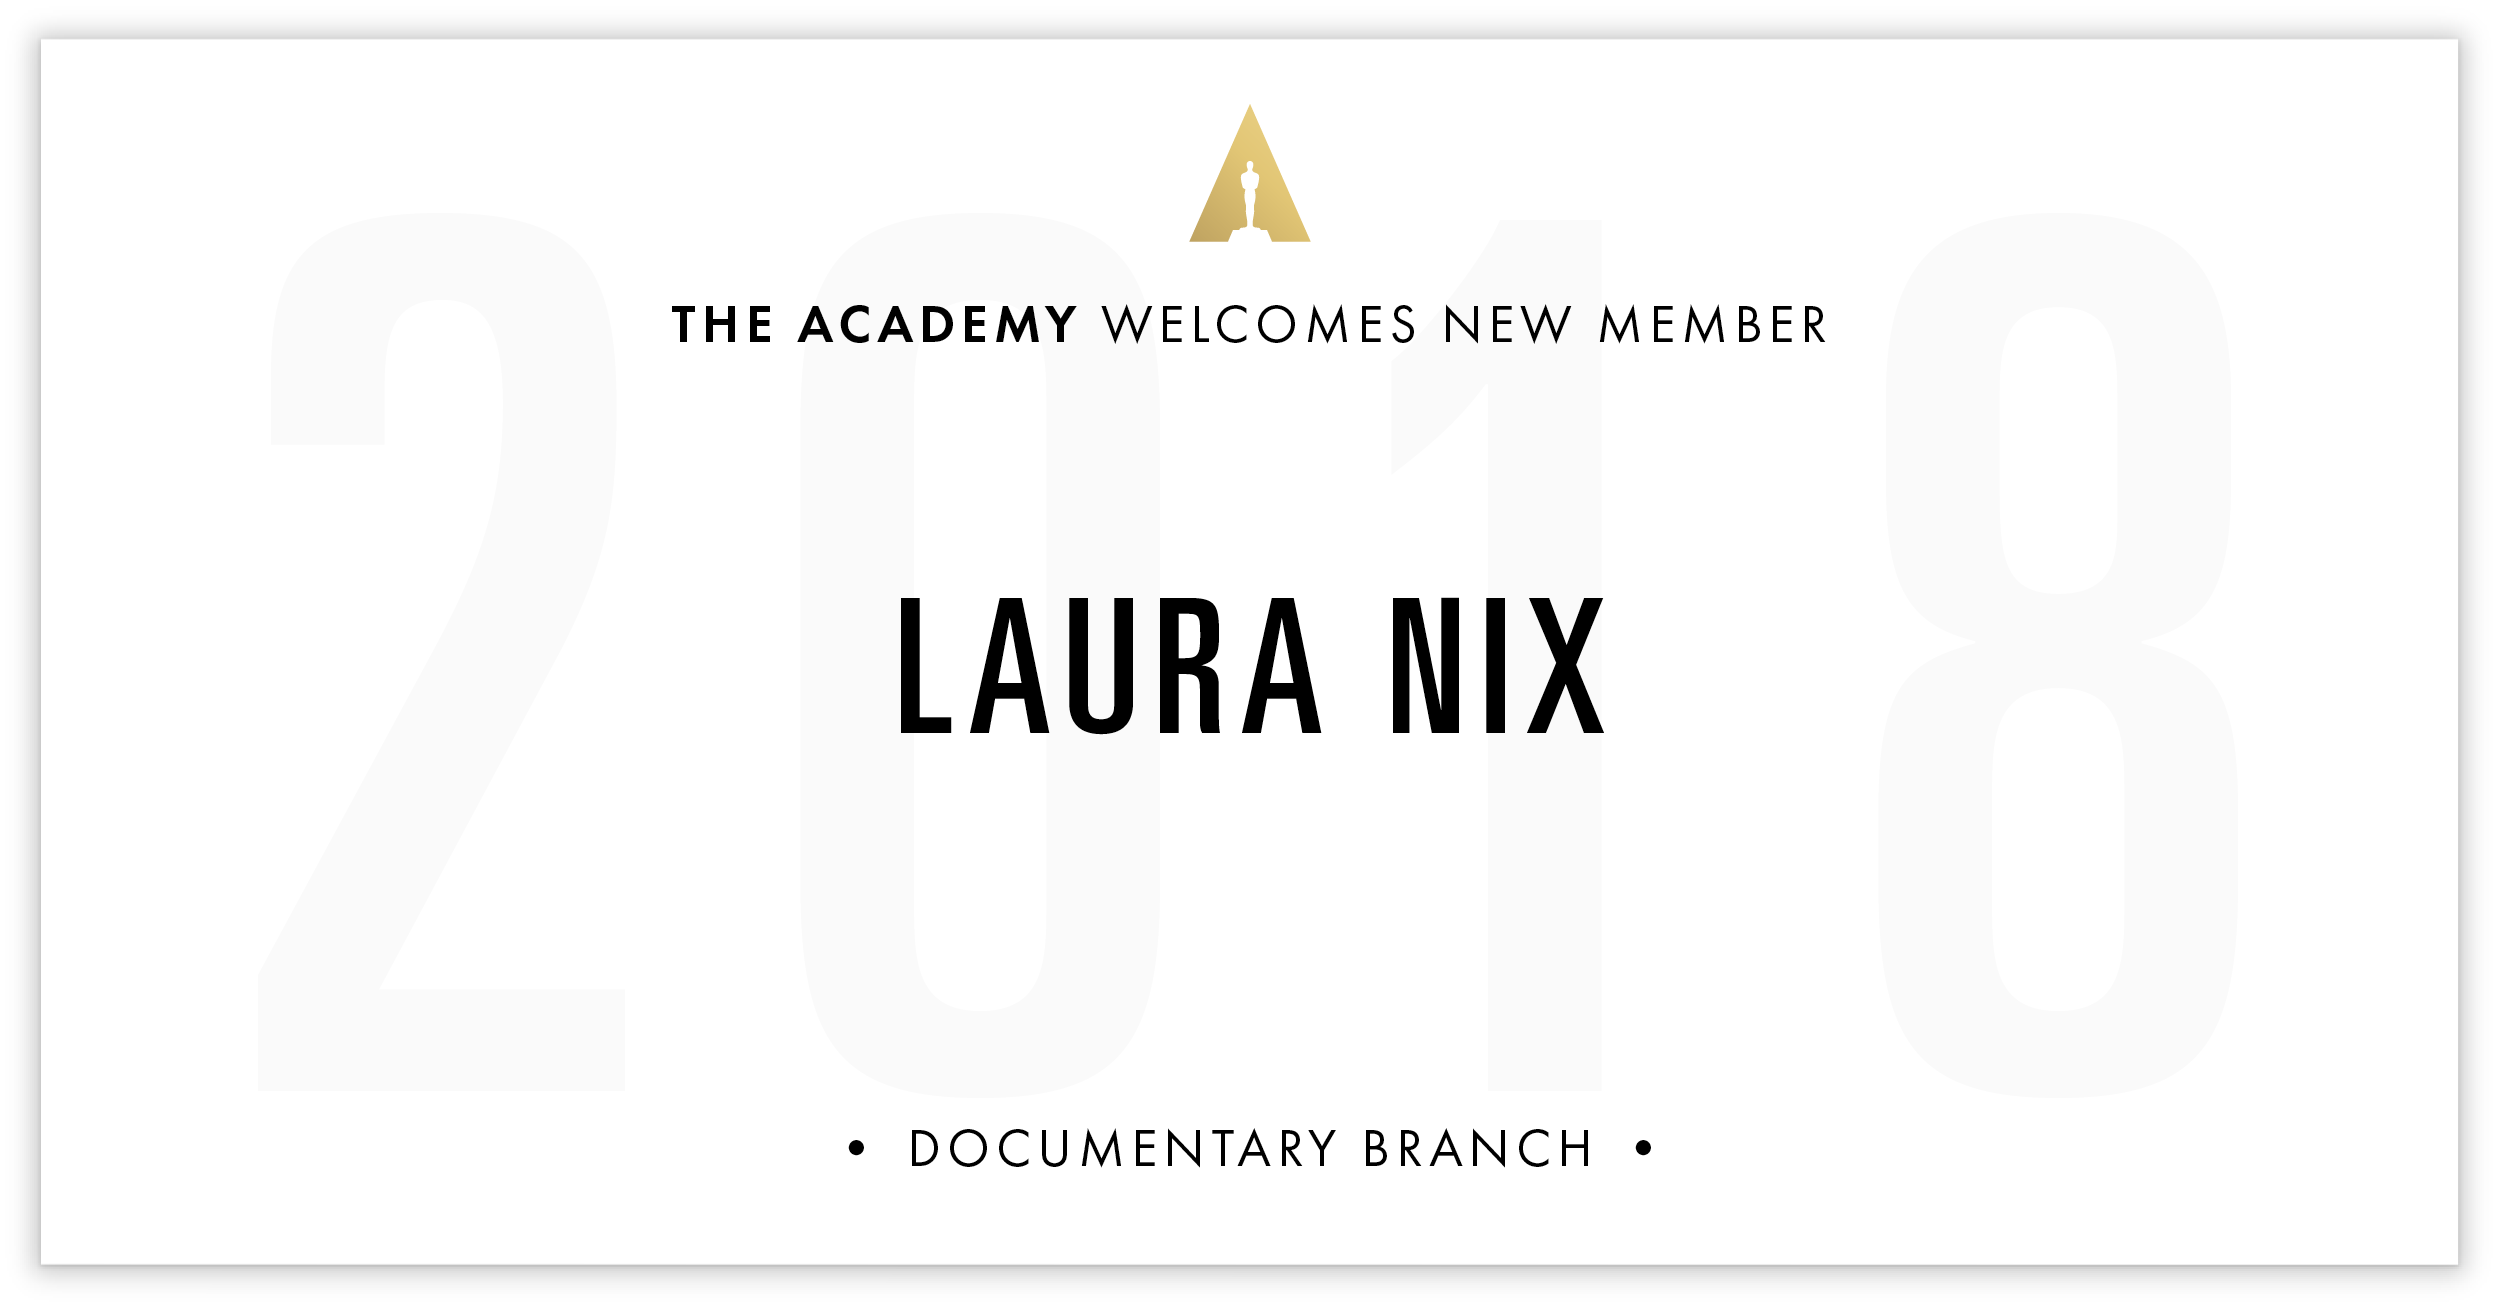 Laura Nix is invited!